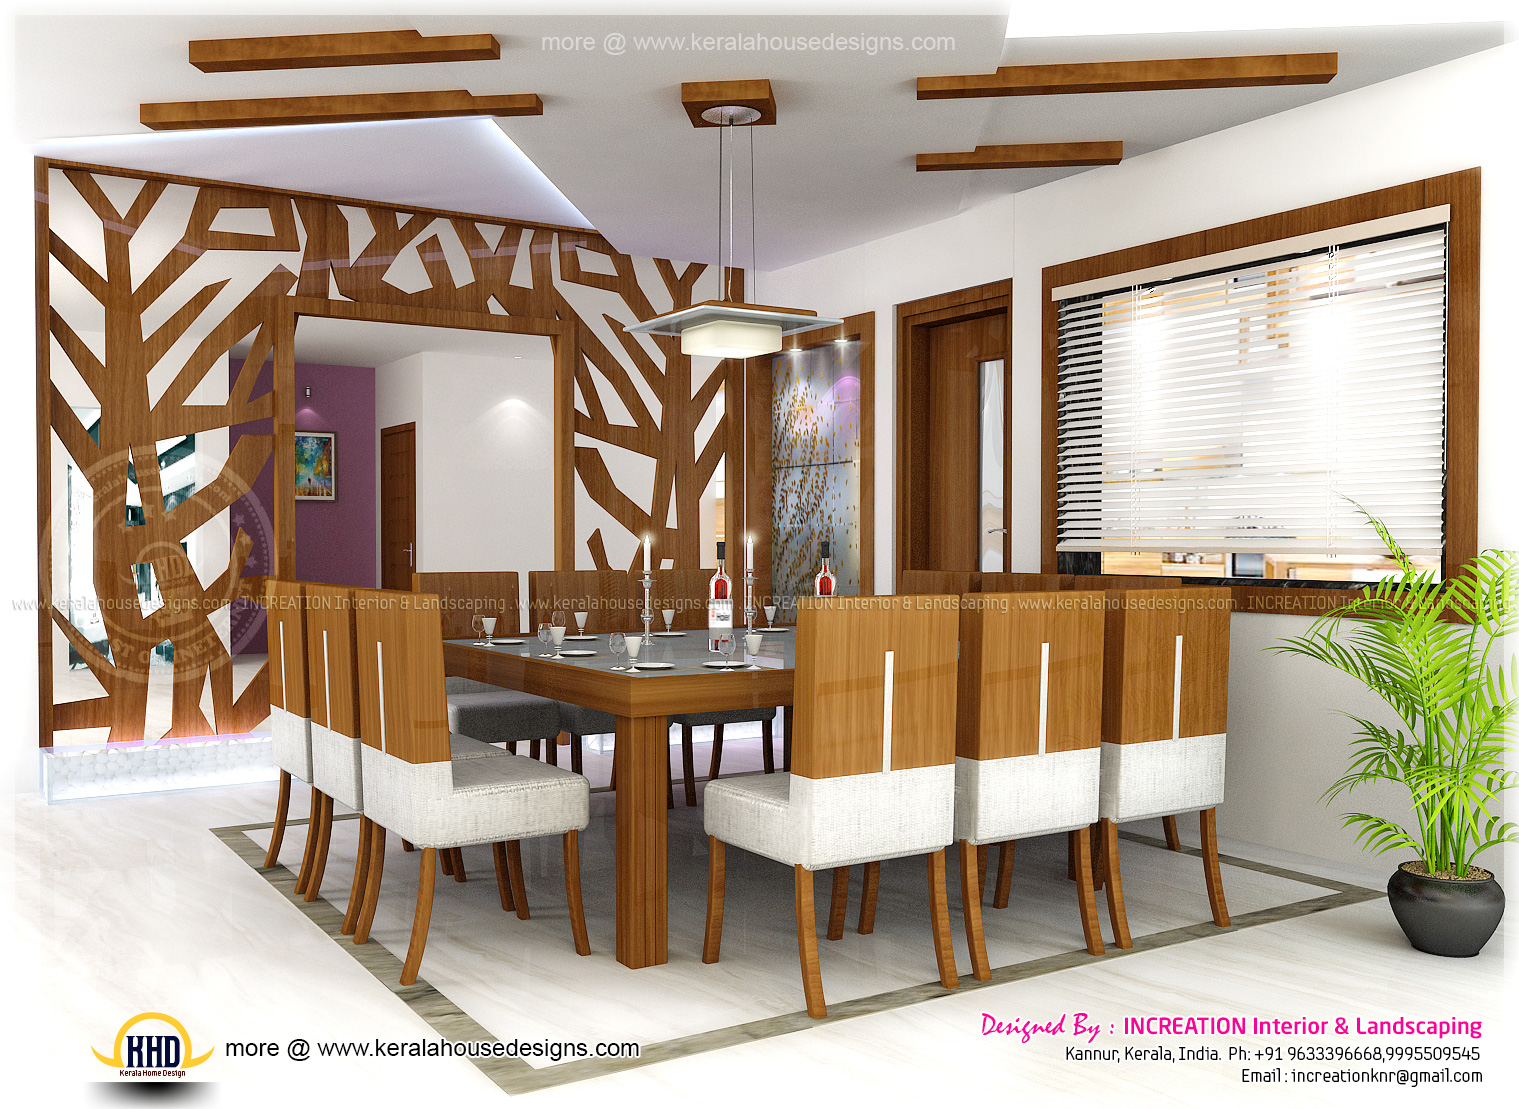 Interior designs from kannur kerala kerala home design for House interior design hall